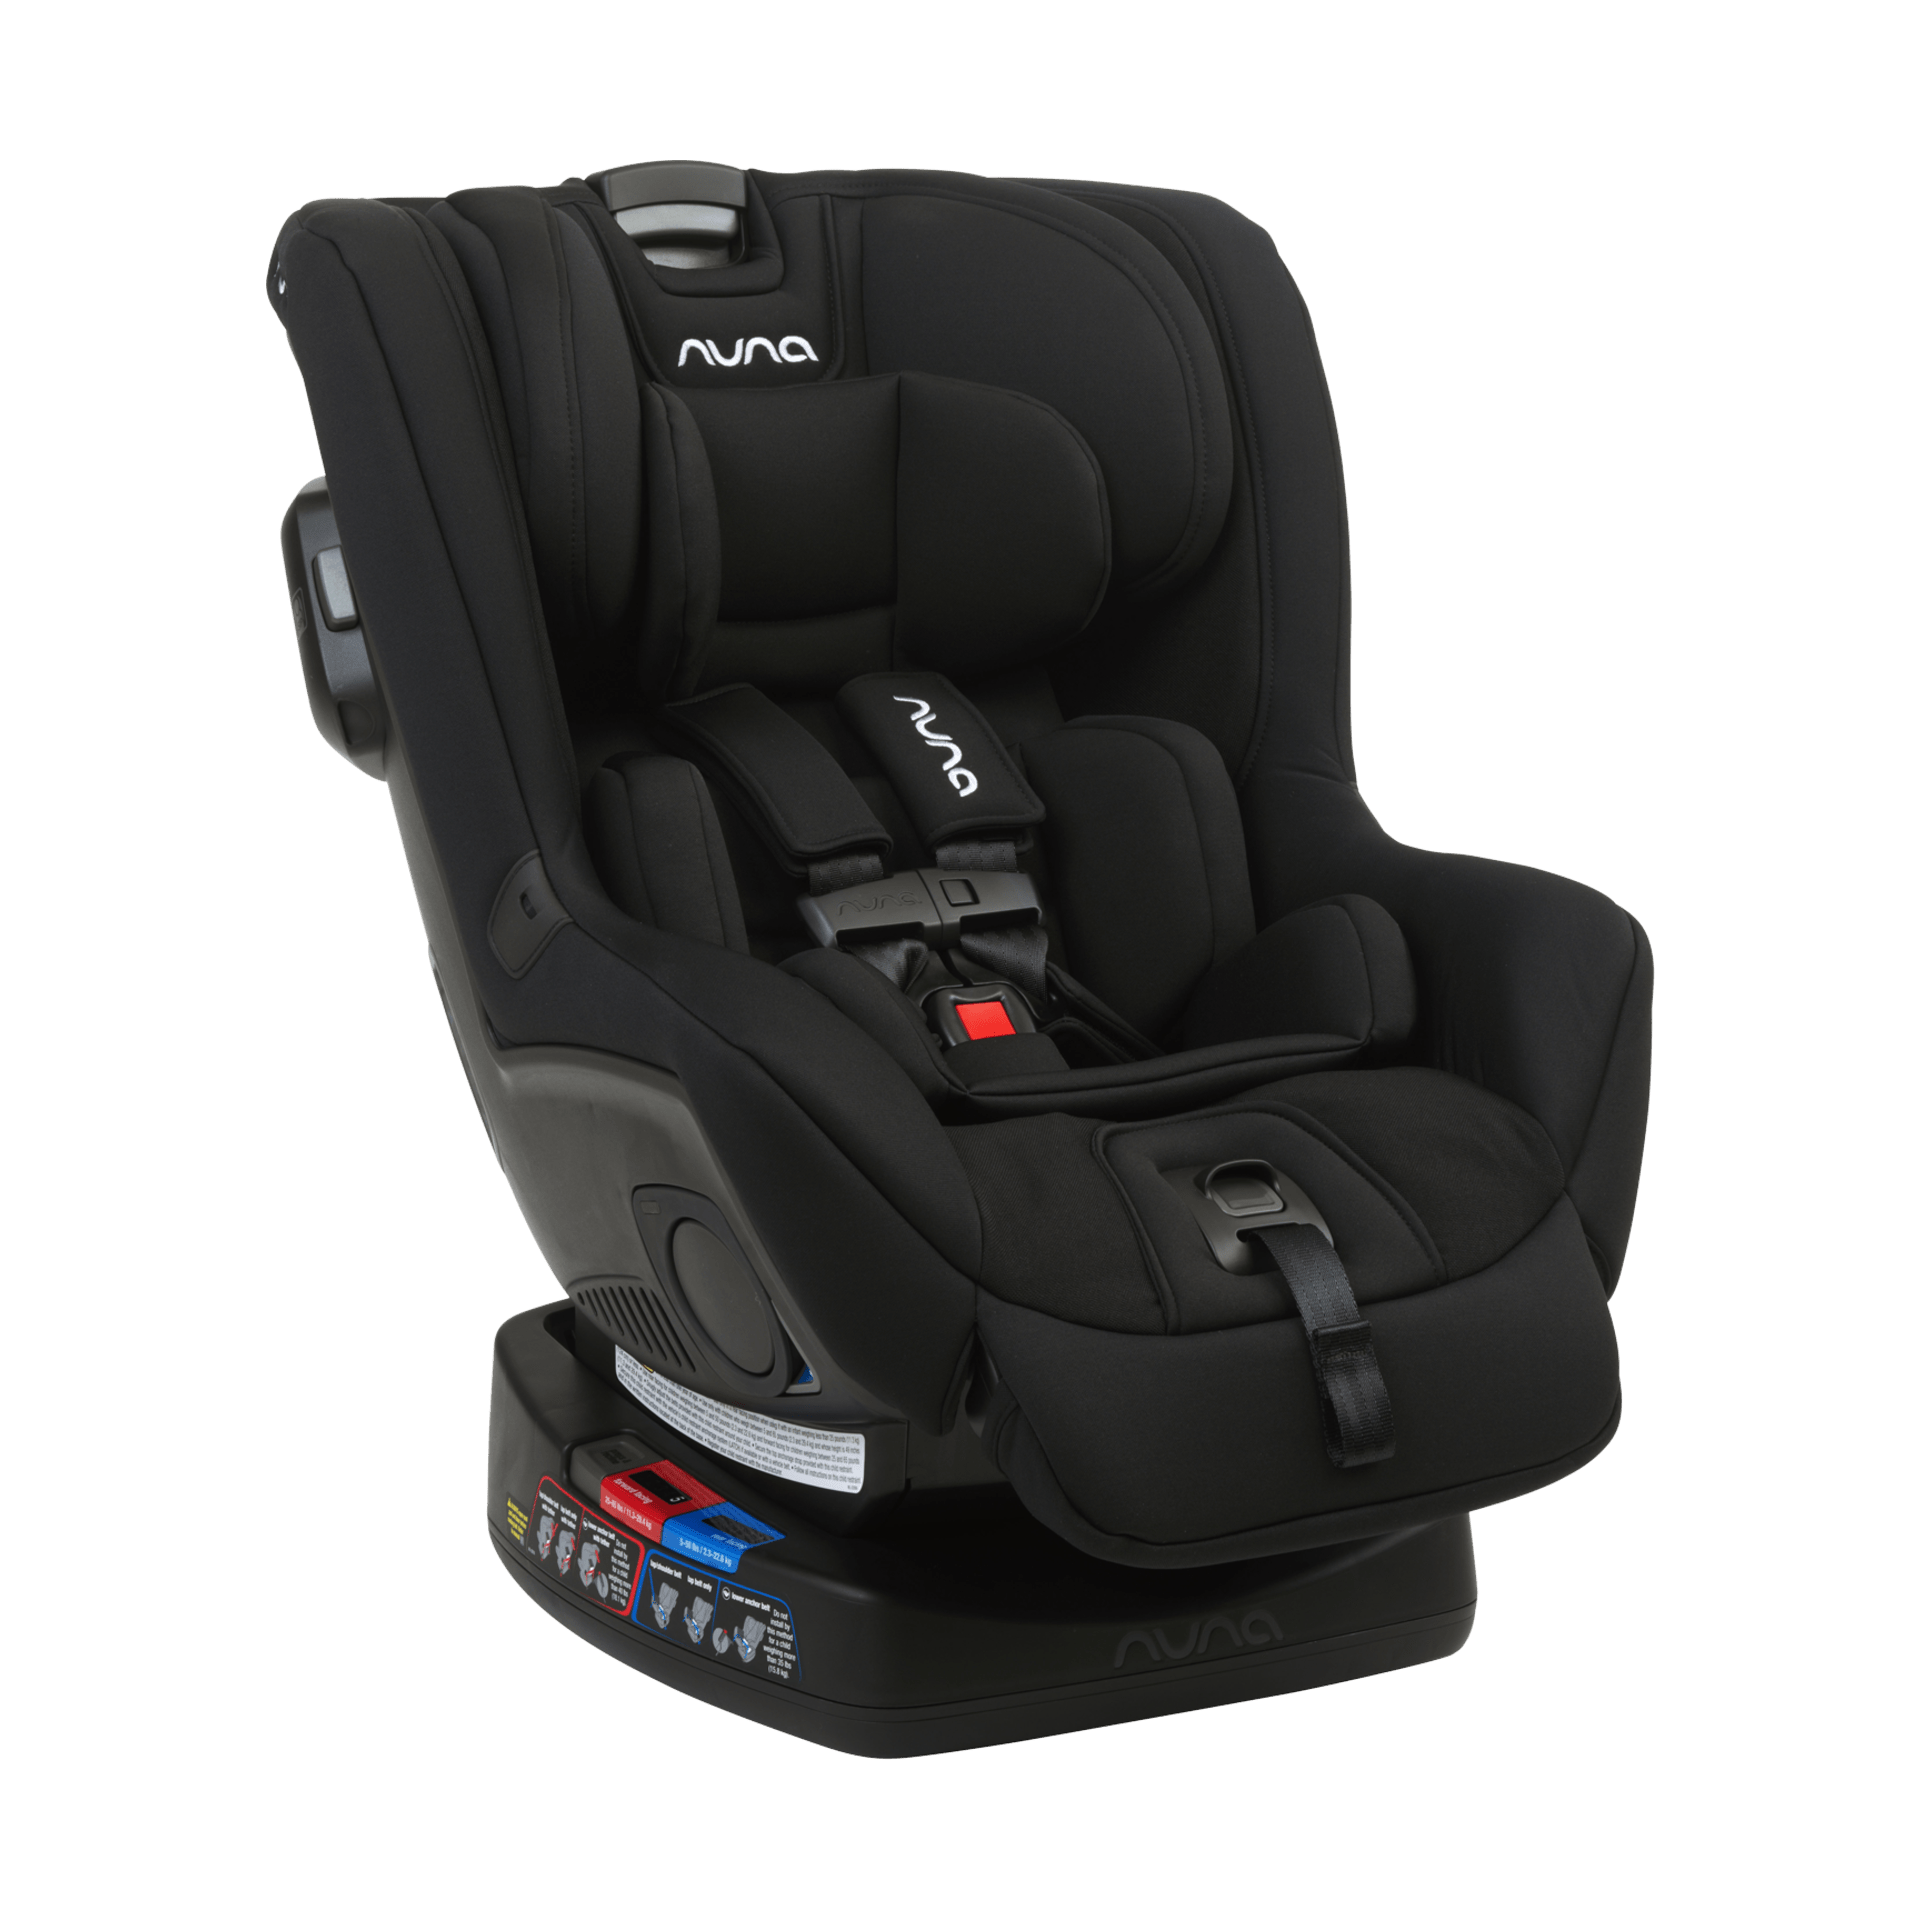 Travel System With Convertible Car Seat Nuna 2019 Rava Convertible Car Seat Caviar